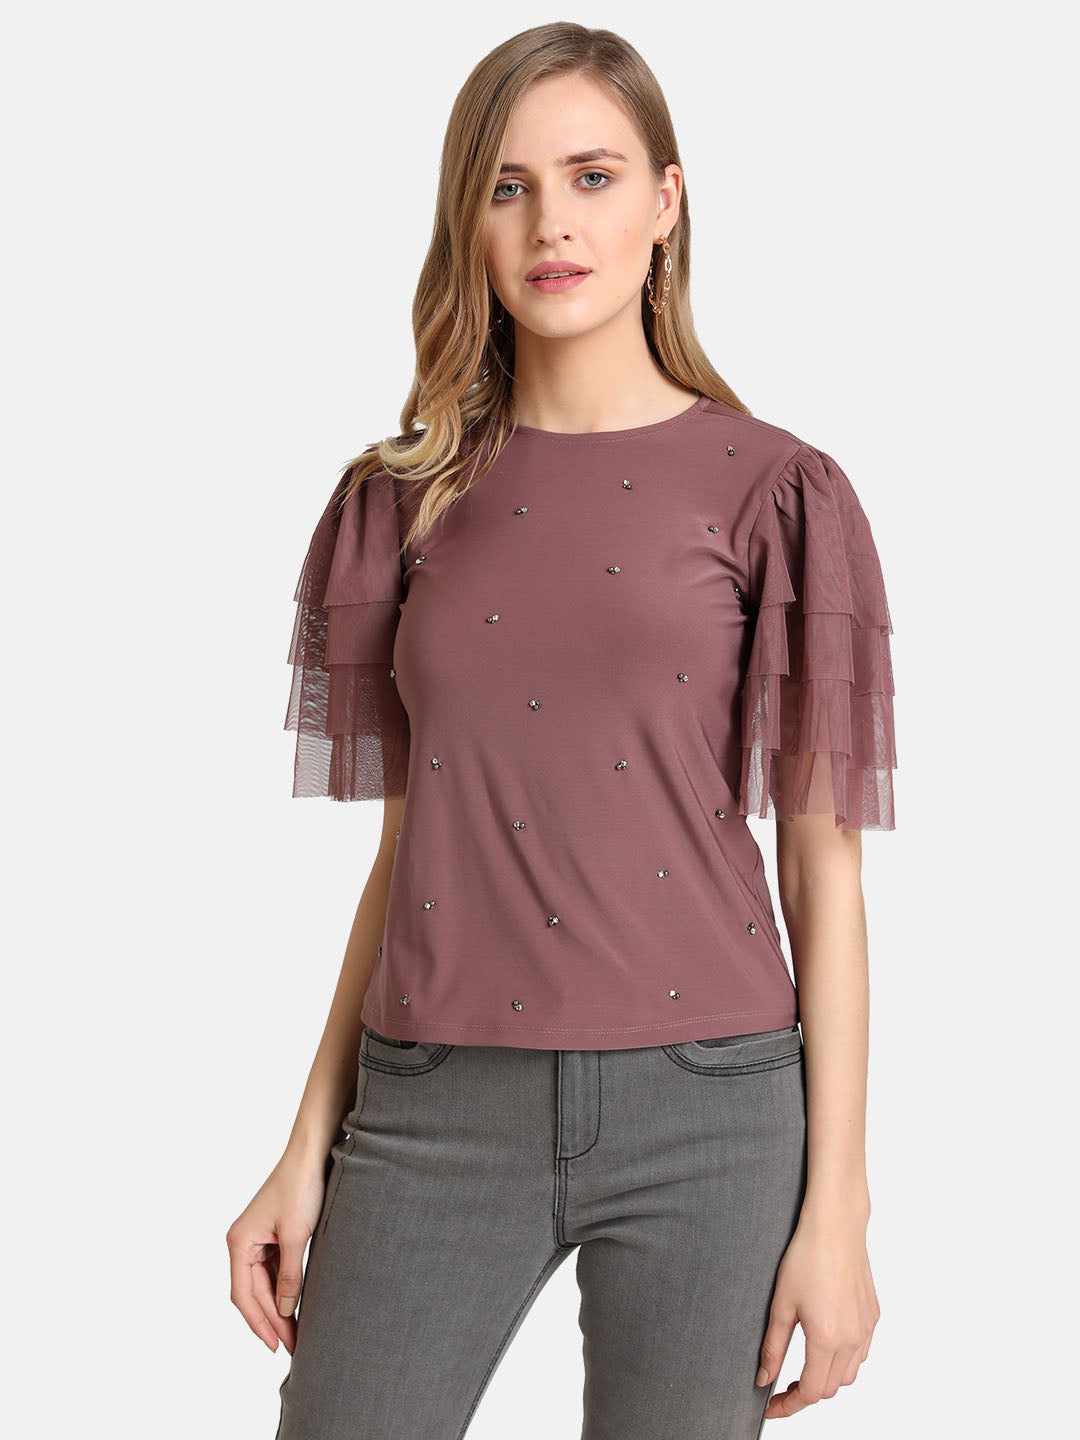 Tiered Sleeves Top With Embellishment